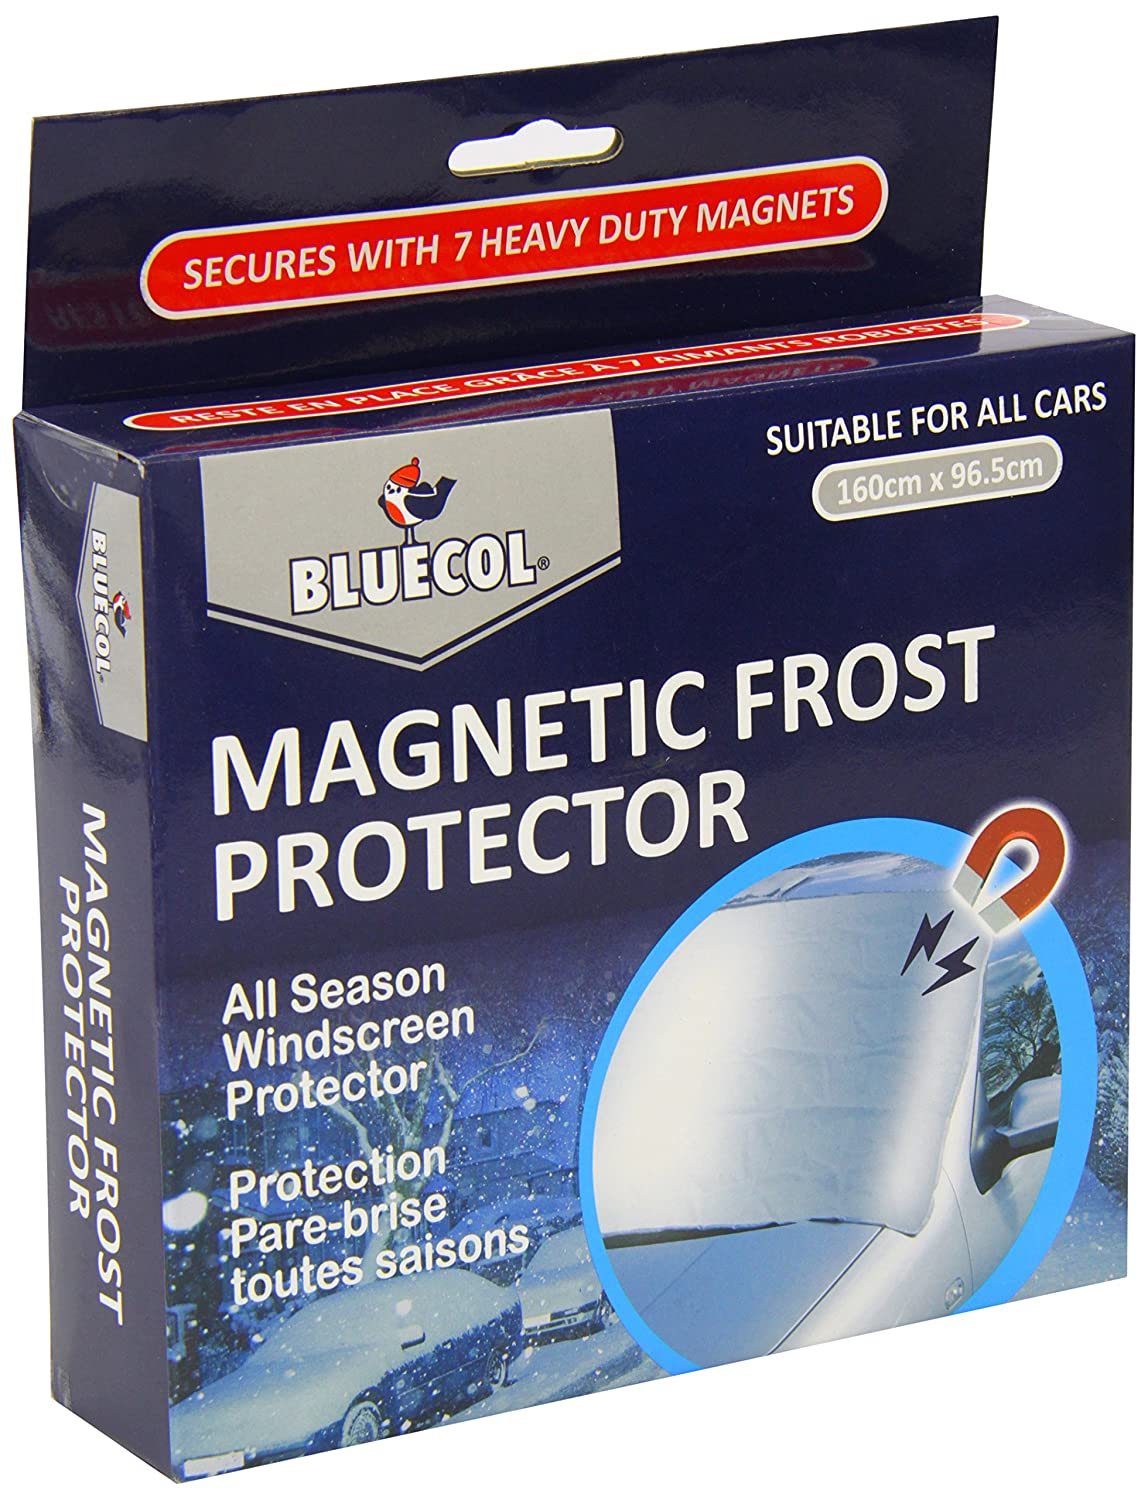 Bluecol Nf56245 Magnetic Car Windscreen Frost Cover Bluecol